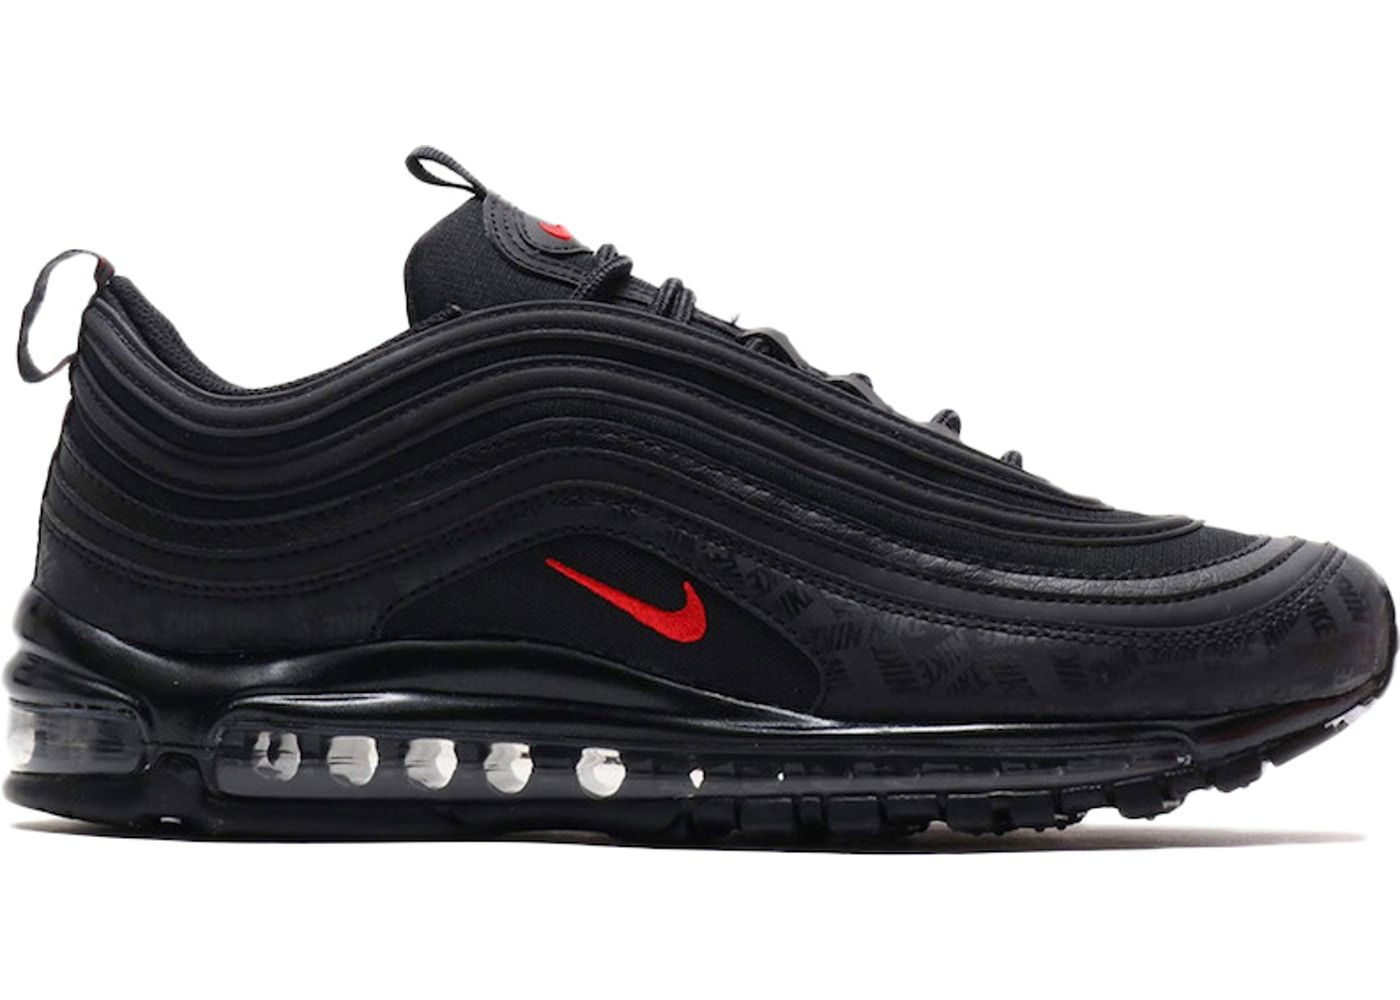 8304fbeabf326f Check out the Air Max 97 All-Over Print Black Red available on StockX